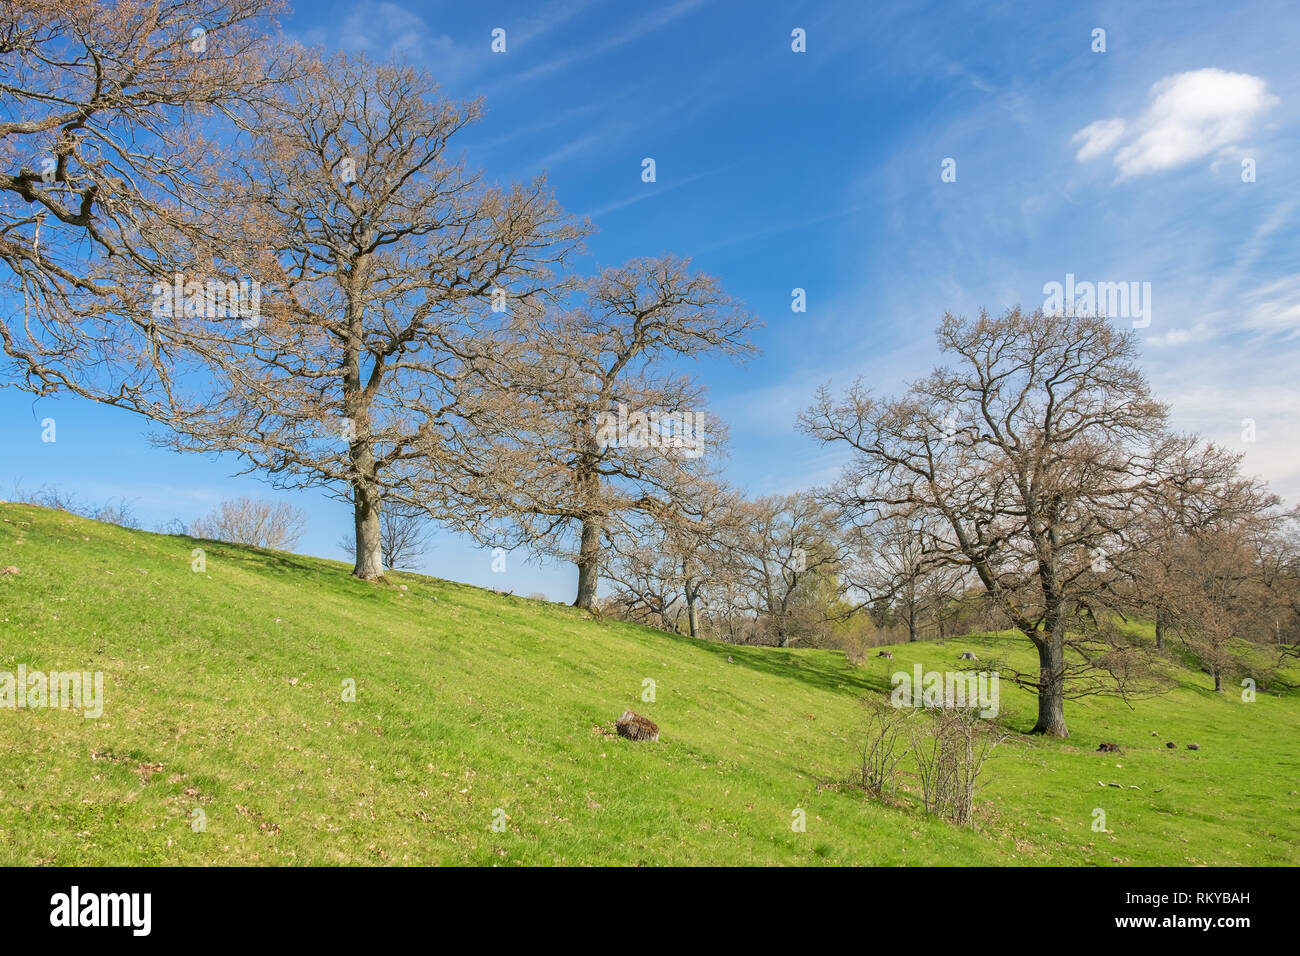 Big oak tree on a hill in a beautiful landscape in spring - Stock Image